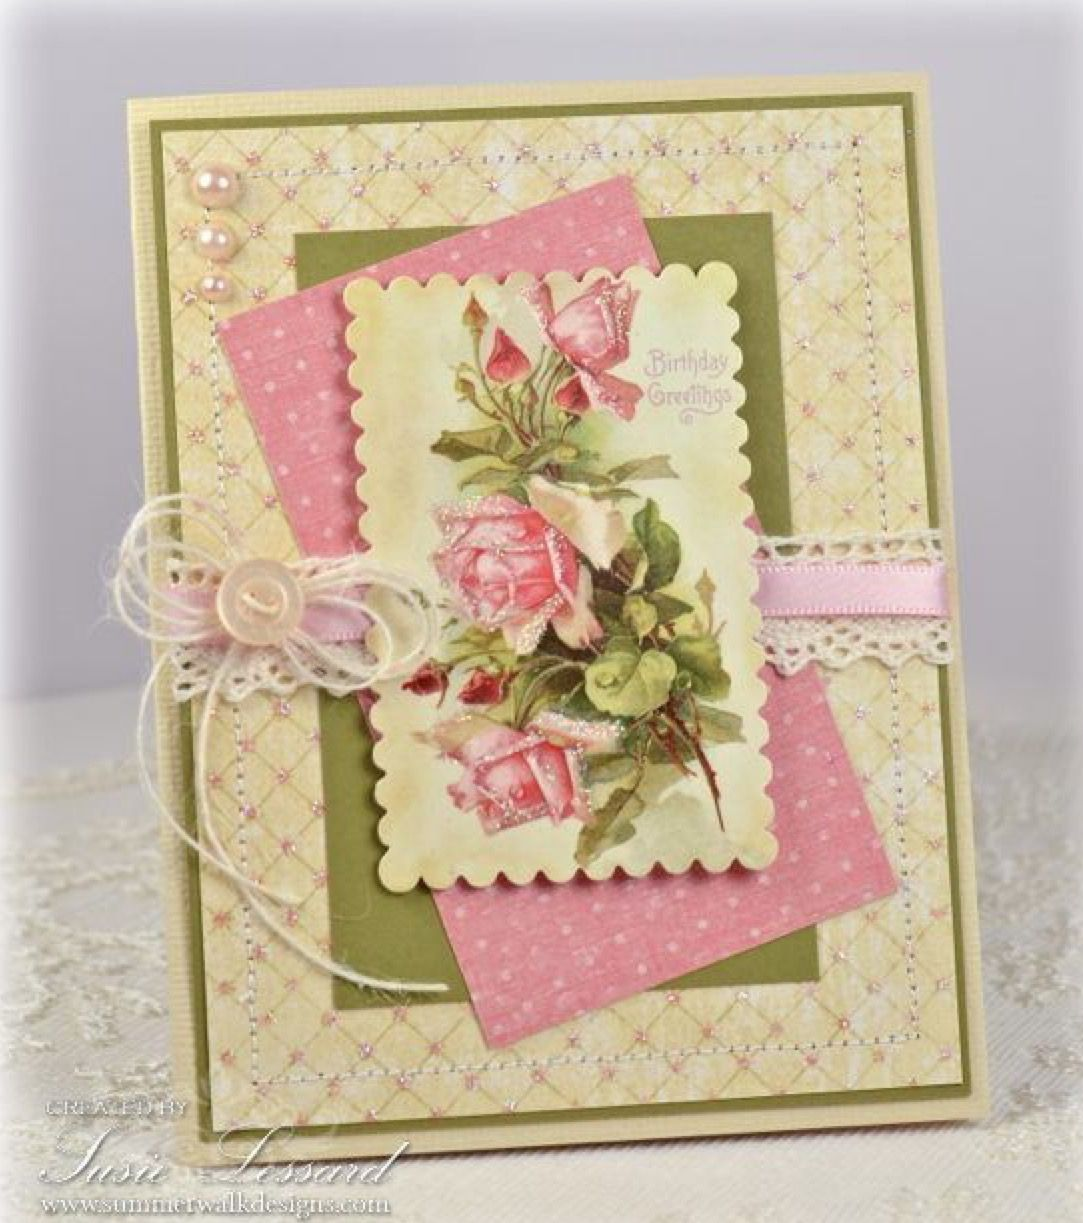 Pin by becky pawson on birthday card pinterest cards card ideas